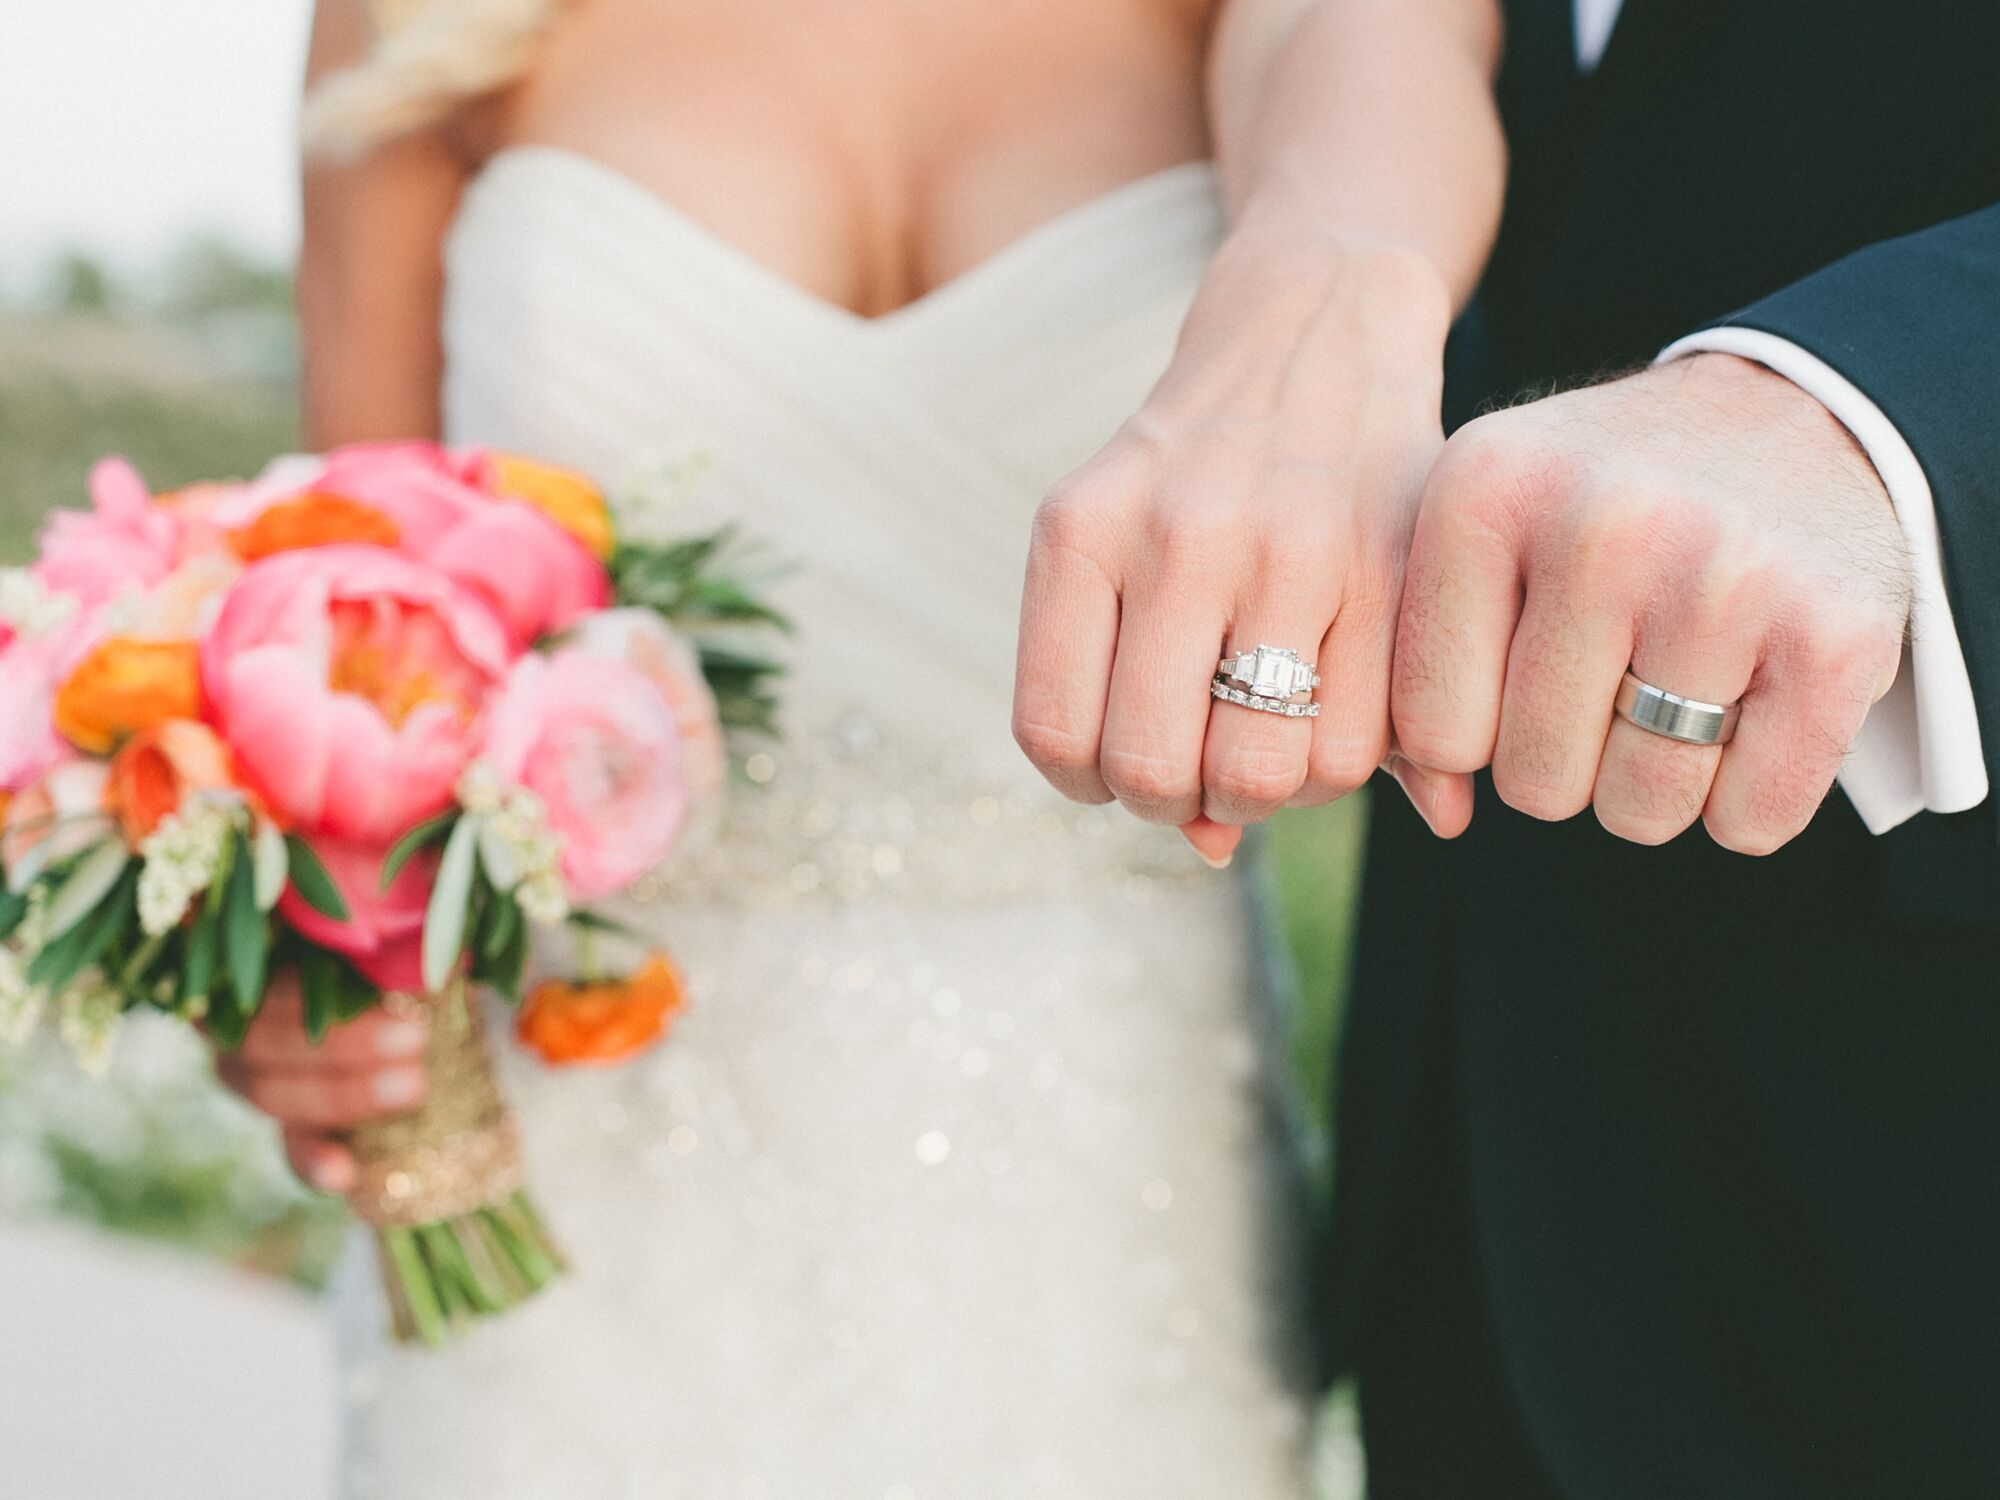 The Engagement Ring vs Wedding Ring: What's the Difference?